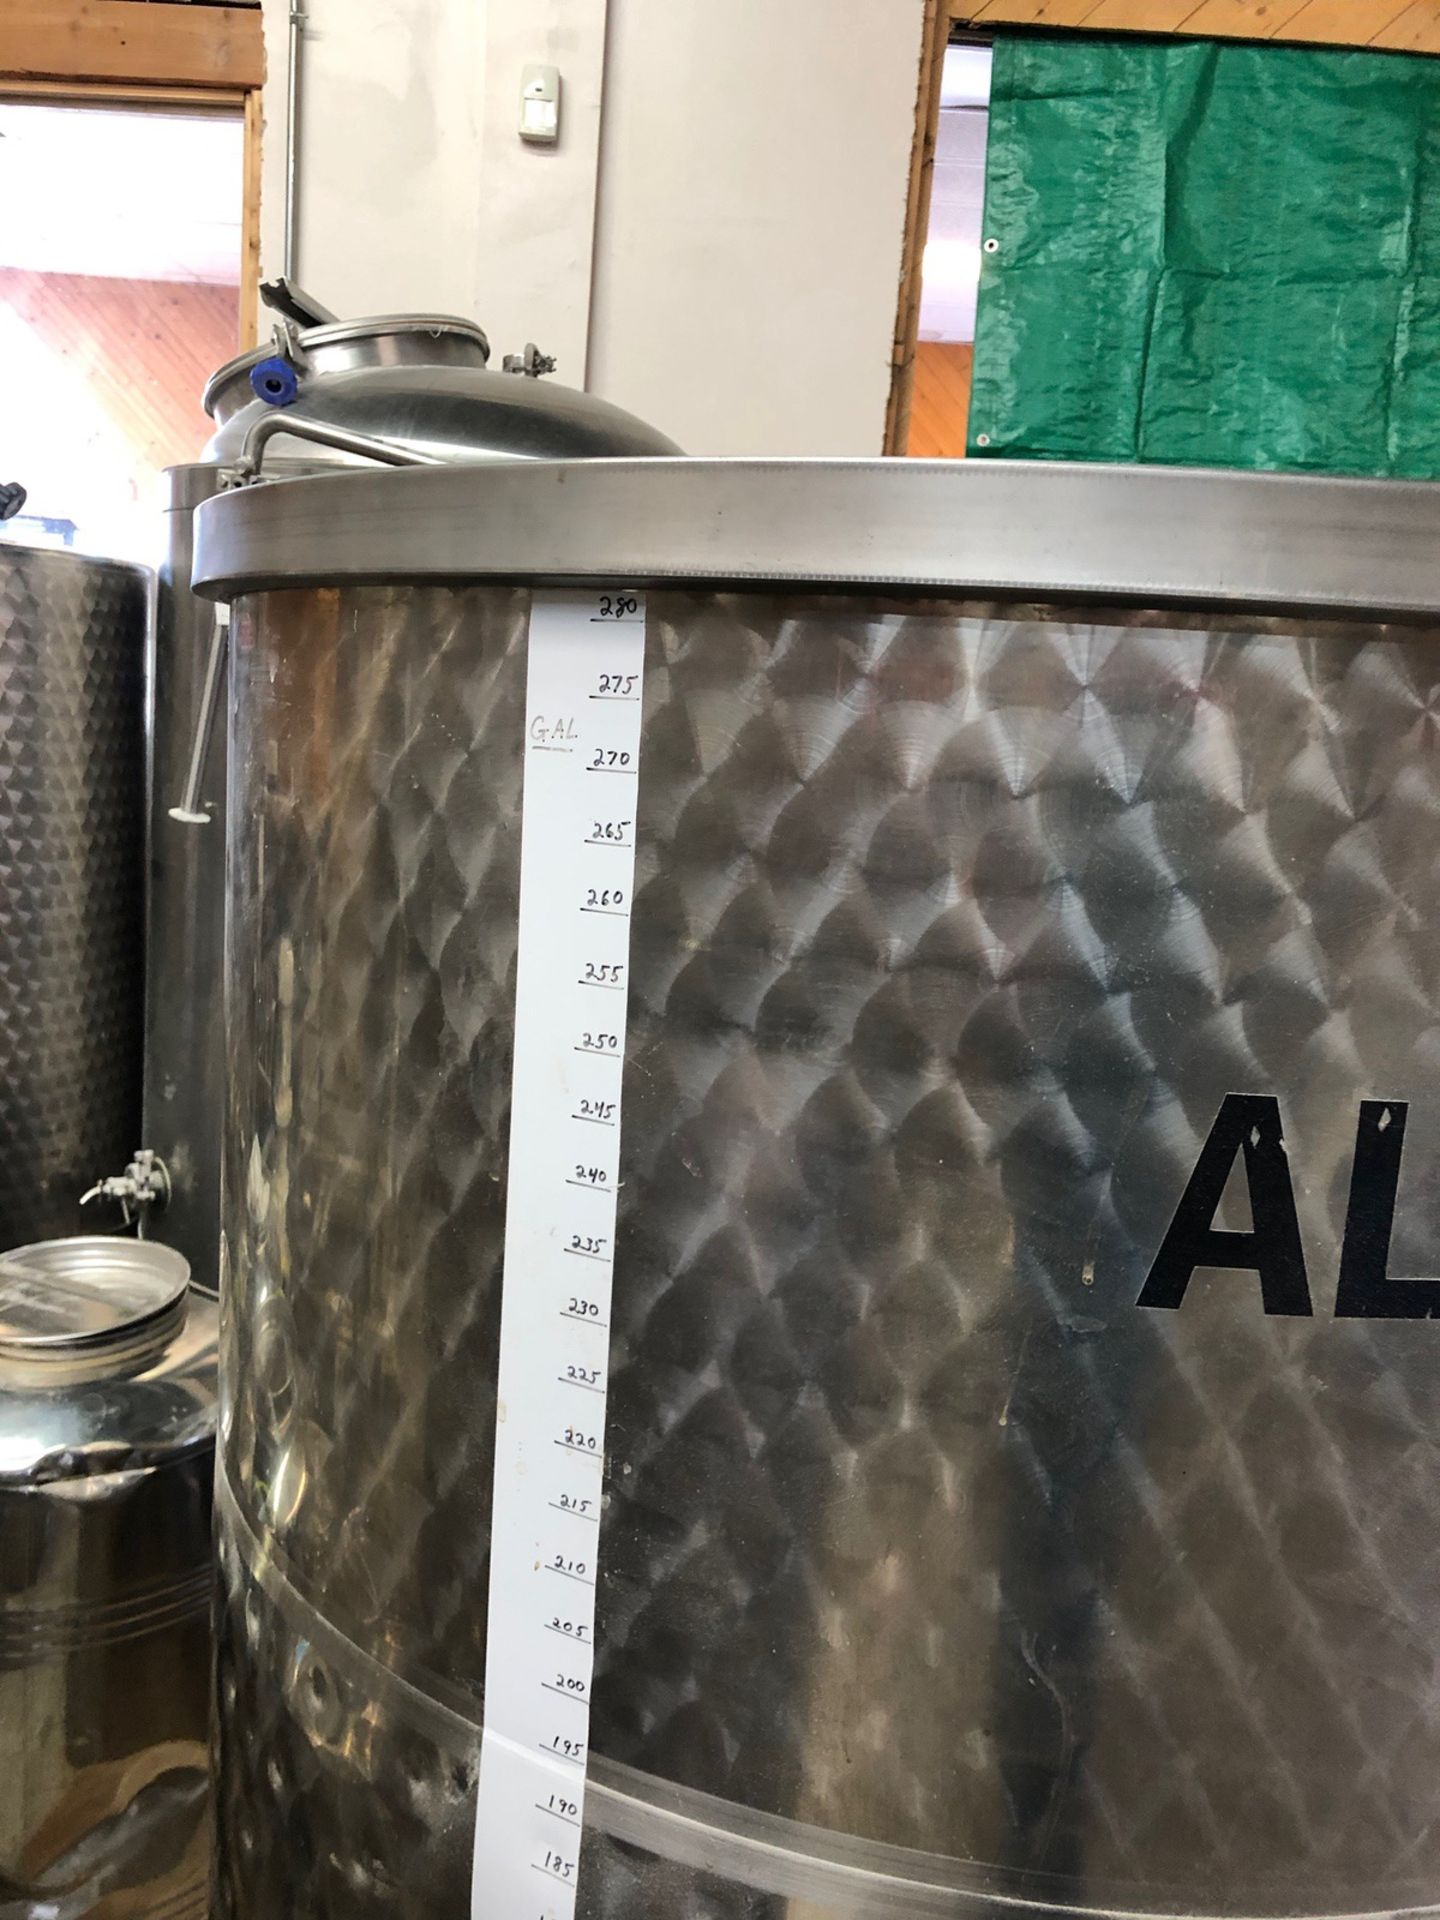 Lot 12 - 260 Gallon Stainless Steel Holding Tank, Approx 38in OD x 61in OAH | Sub to Bulk | Rig Fee: $150